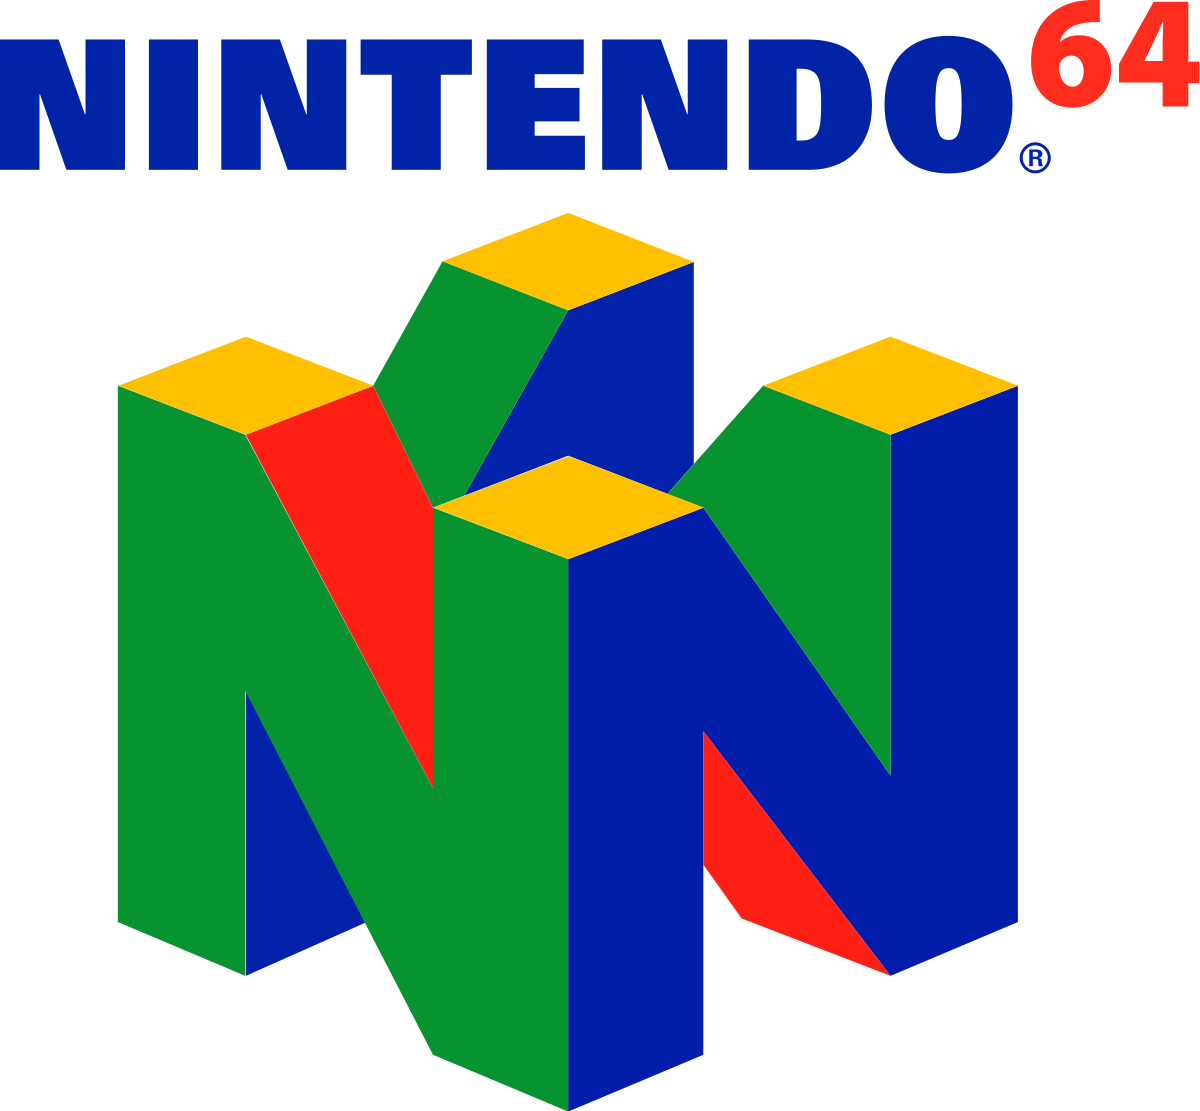 Nintendo Classic Mini N64: 21 games we want to see